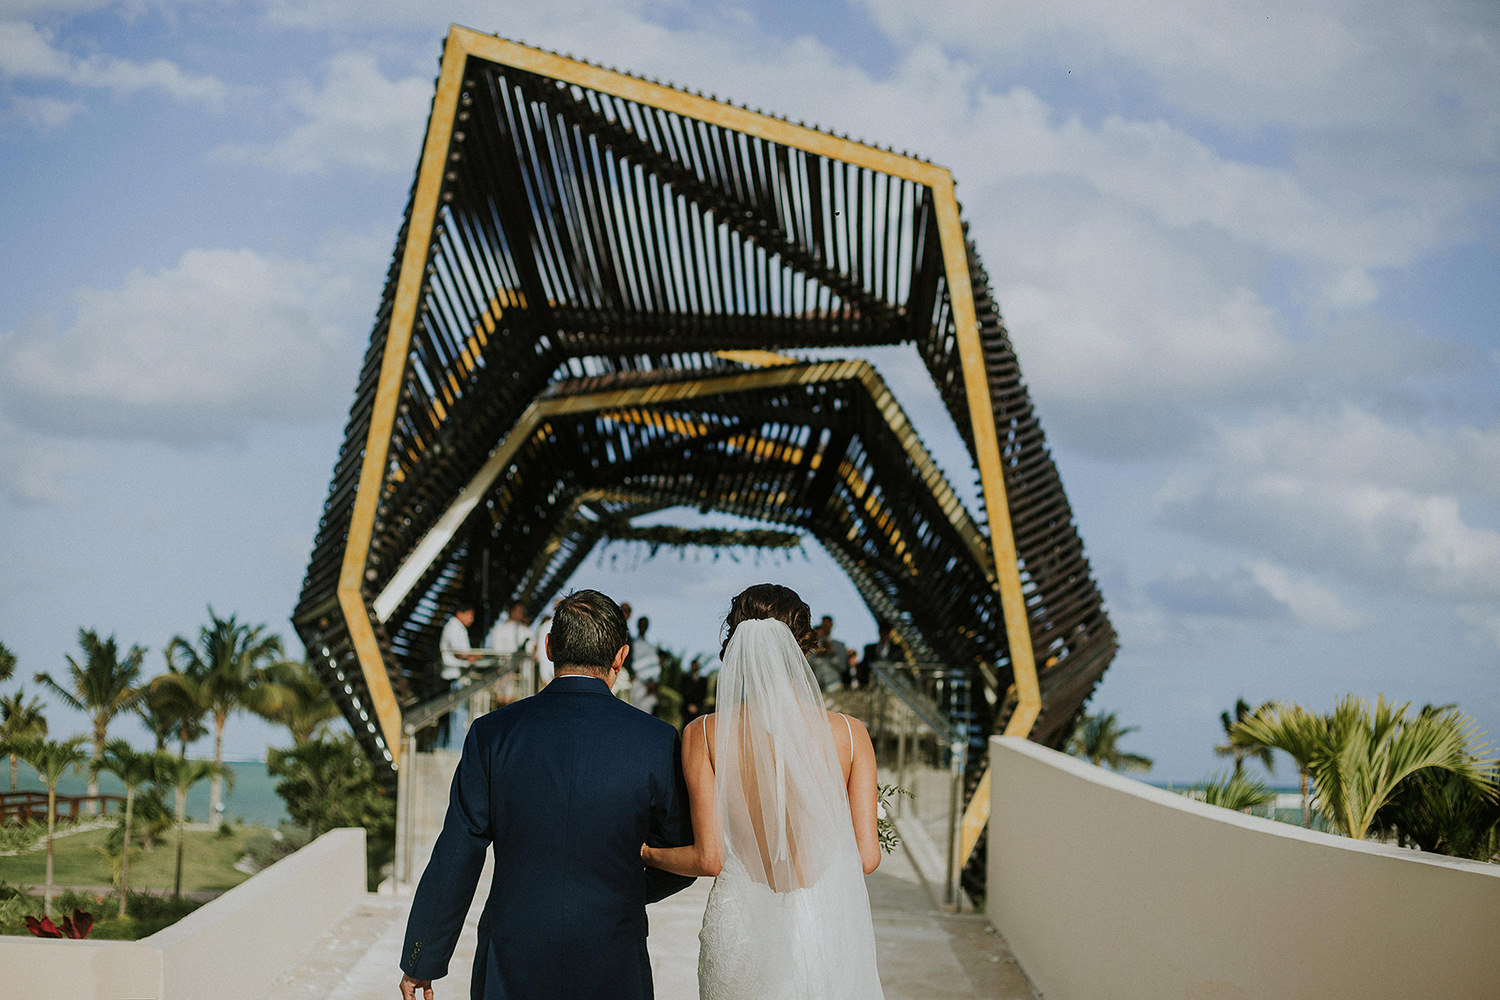 CherylReed_Wedding_Kape_Photography_WeddingPhotography_Mexico_Boda_Fotografia_Royalton_Hideway_Cancun_RivieraMaya_PlayadelCarmen_Beach_235FB_BLOG.jpg